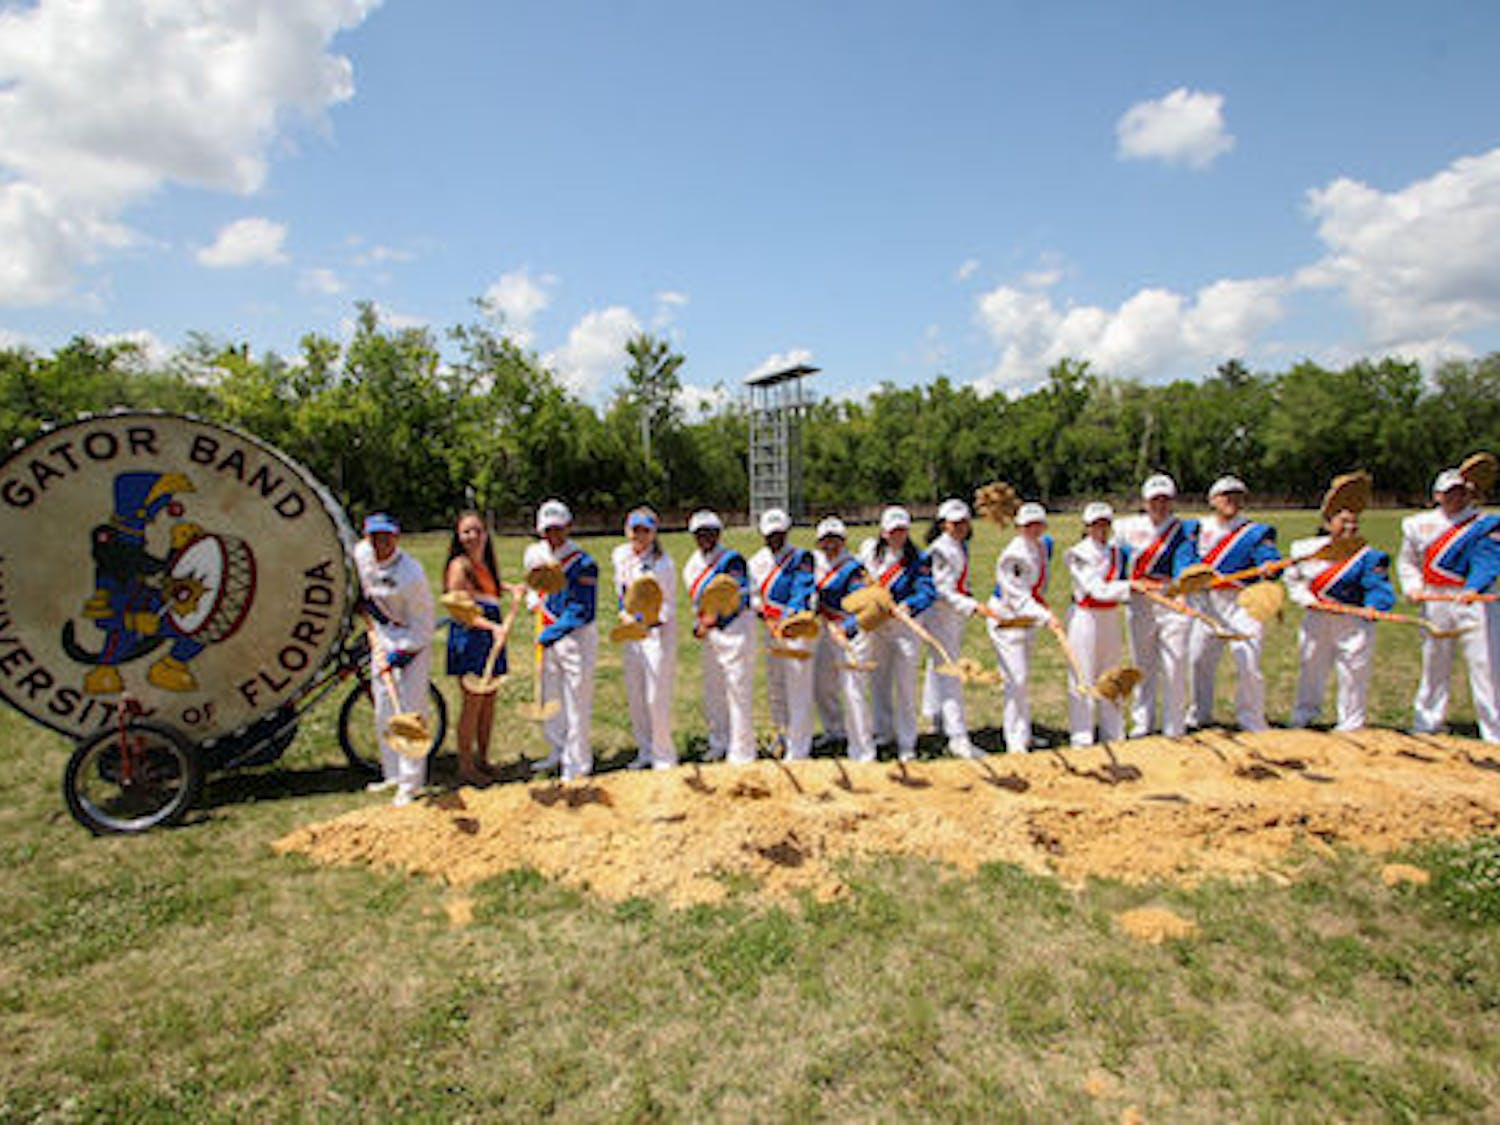 Gator Band members toss dirt to break ground for the new Gator Marching Practice Facility on April 13.